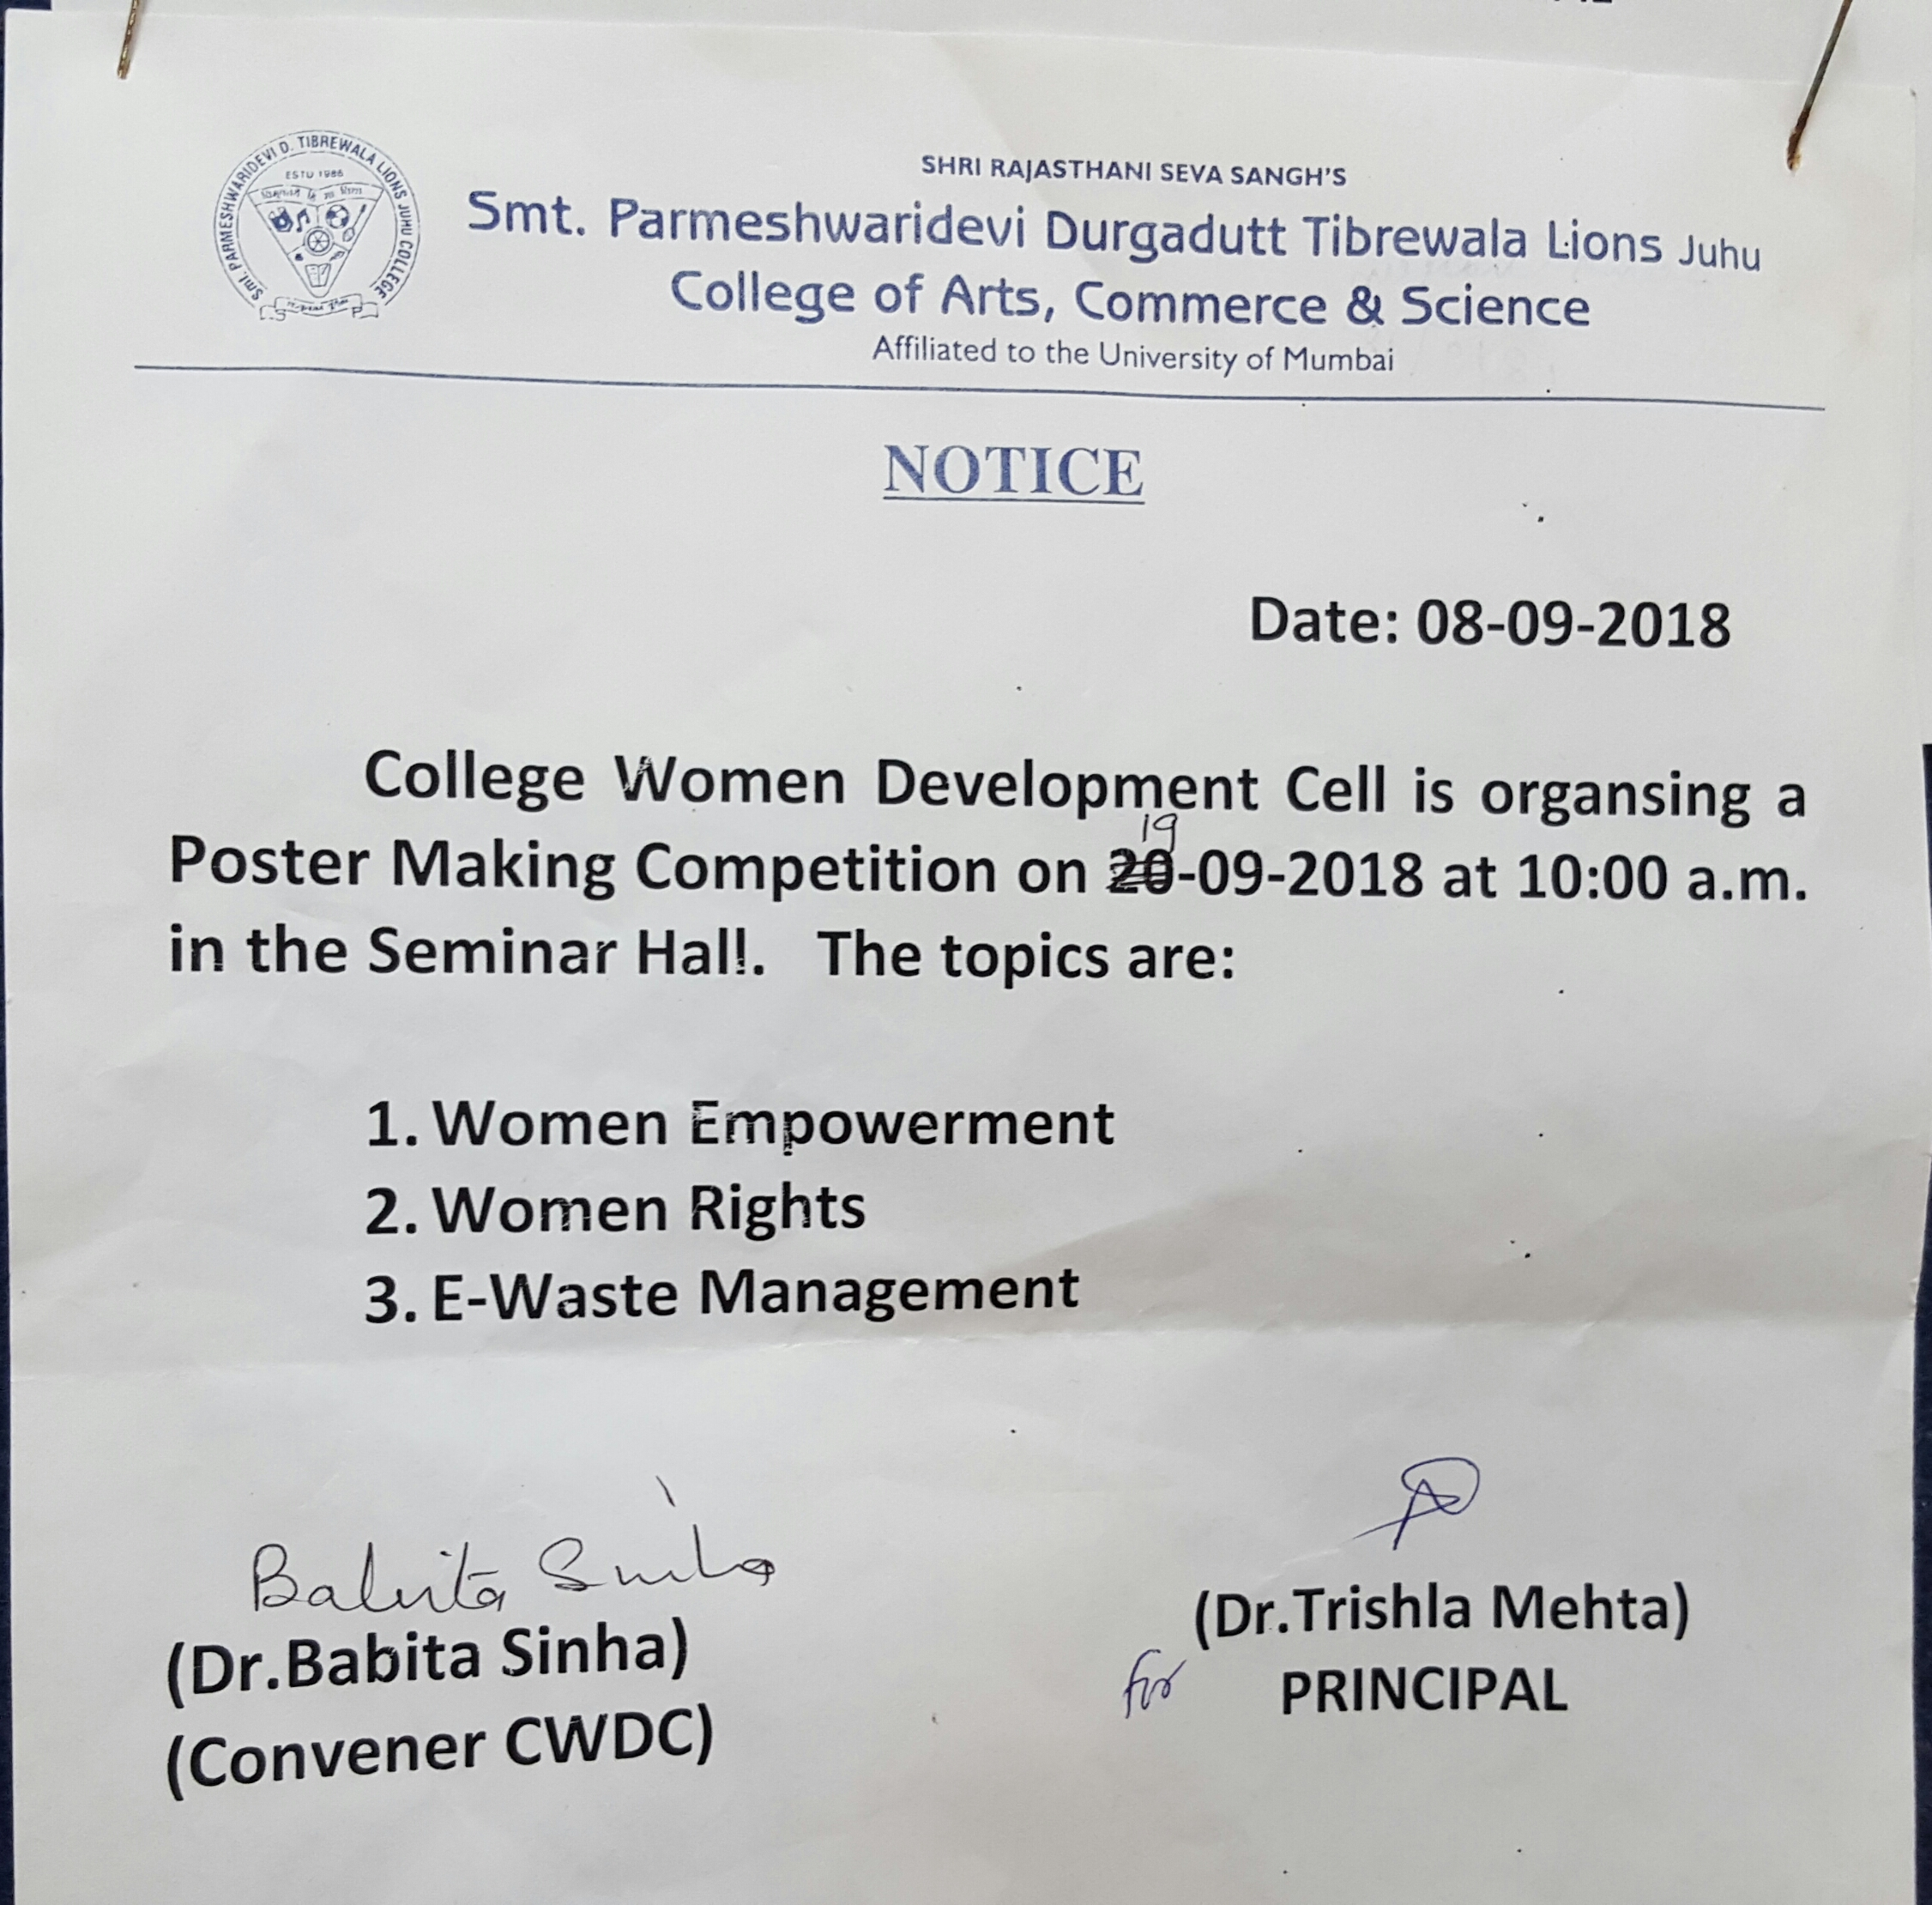 College Women Development Cell (CWDC) organised a 'Poster